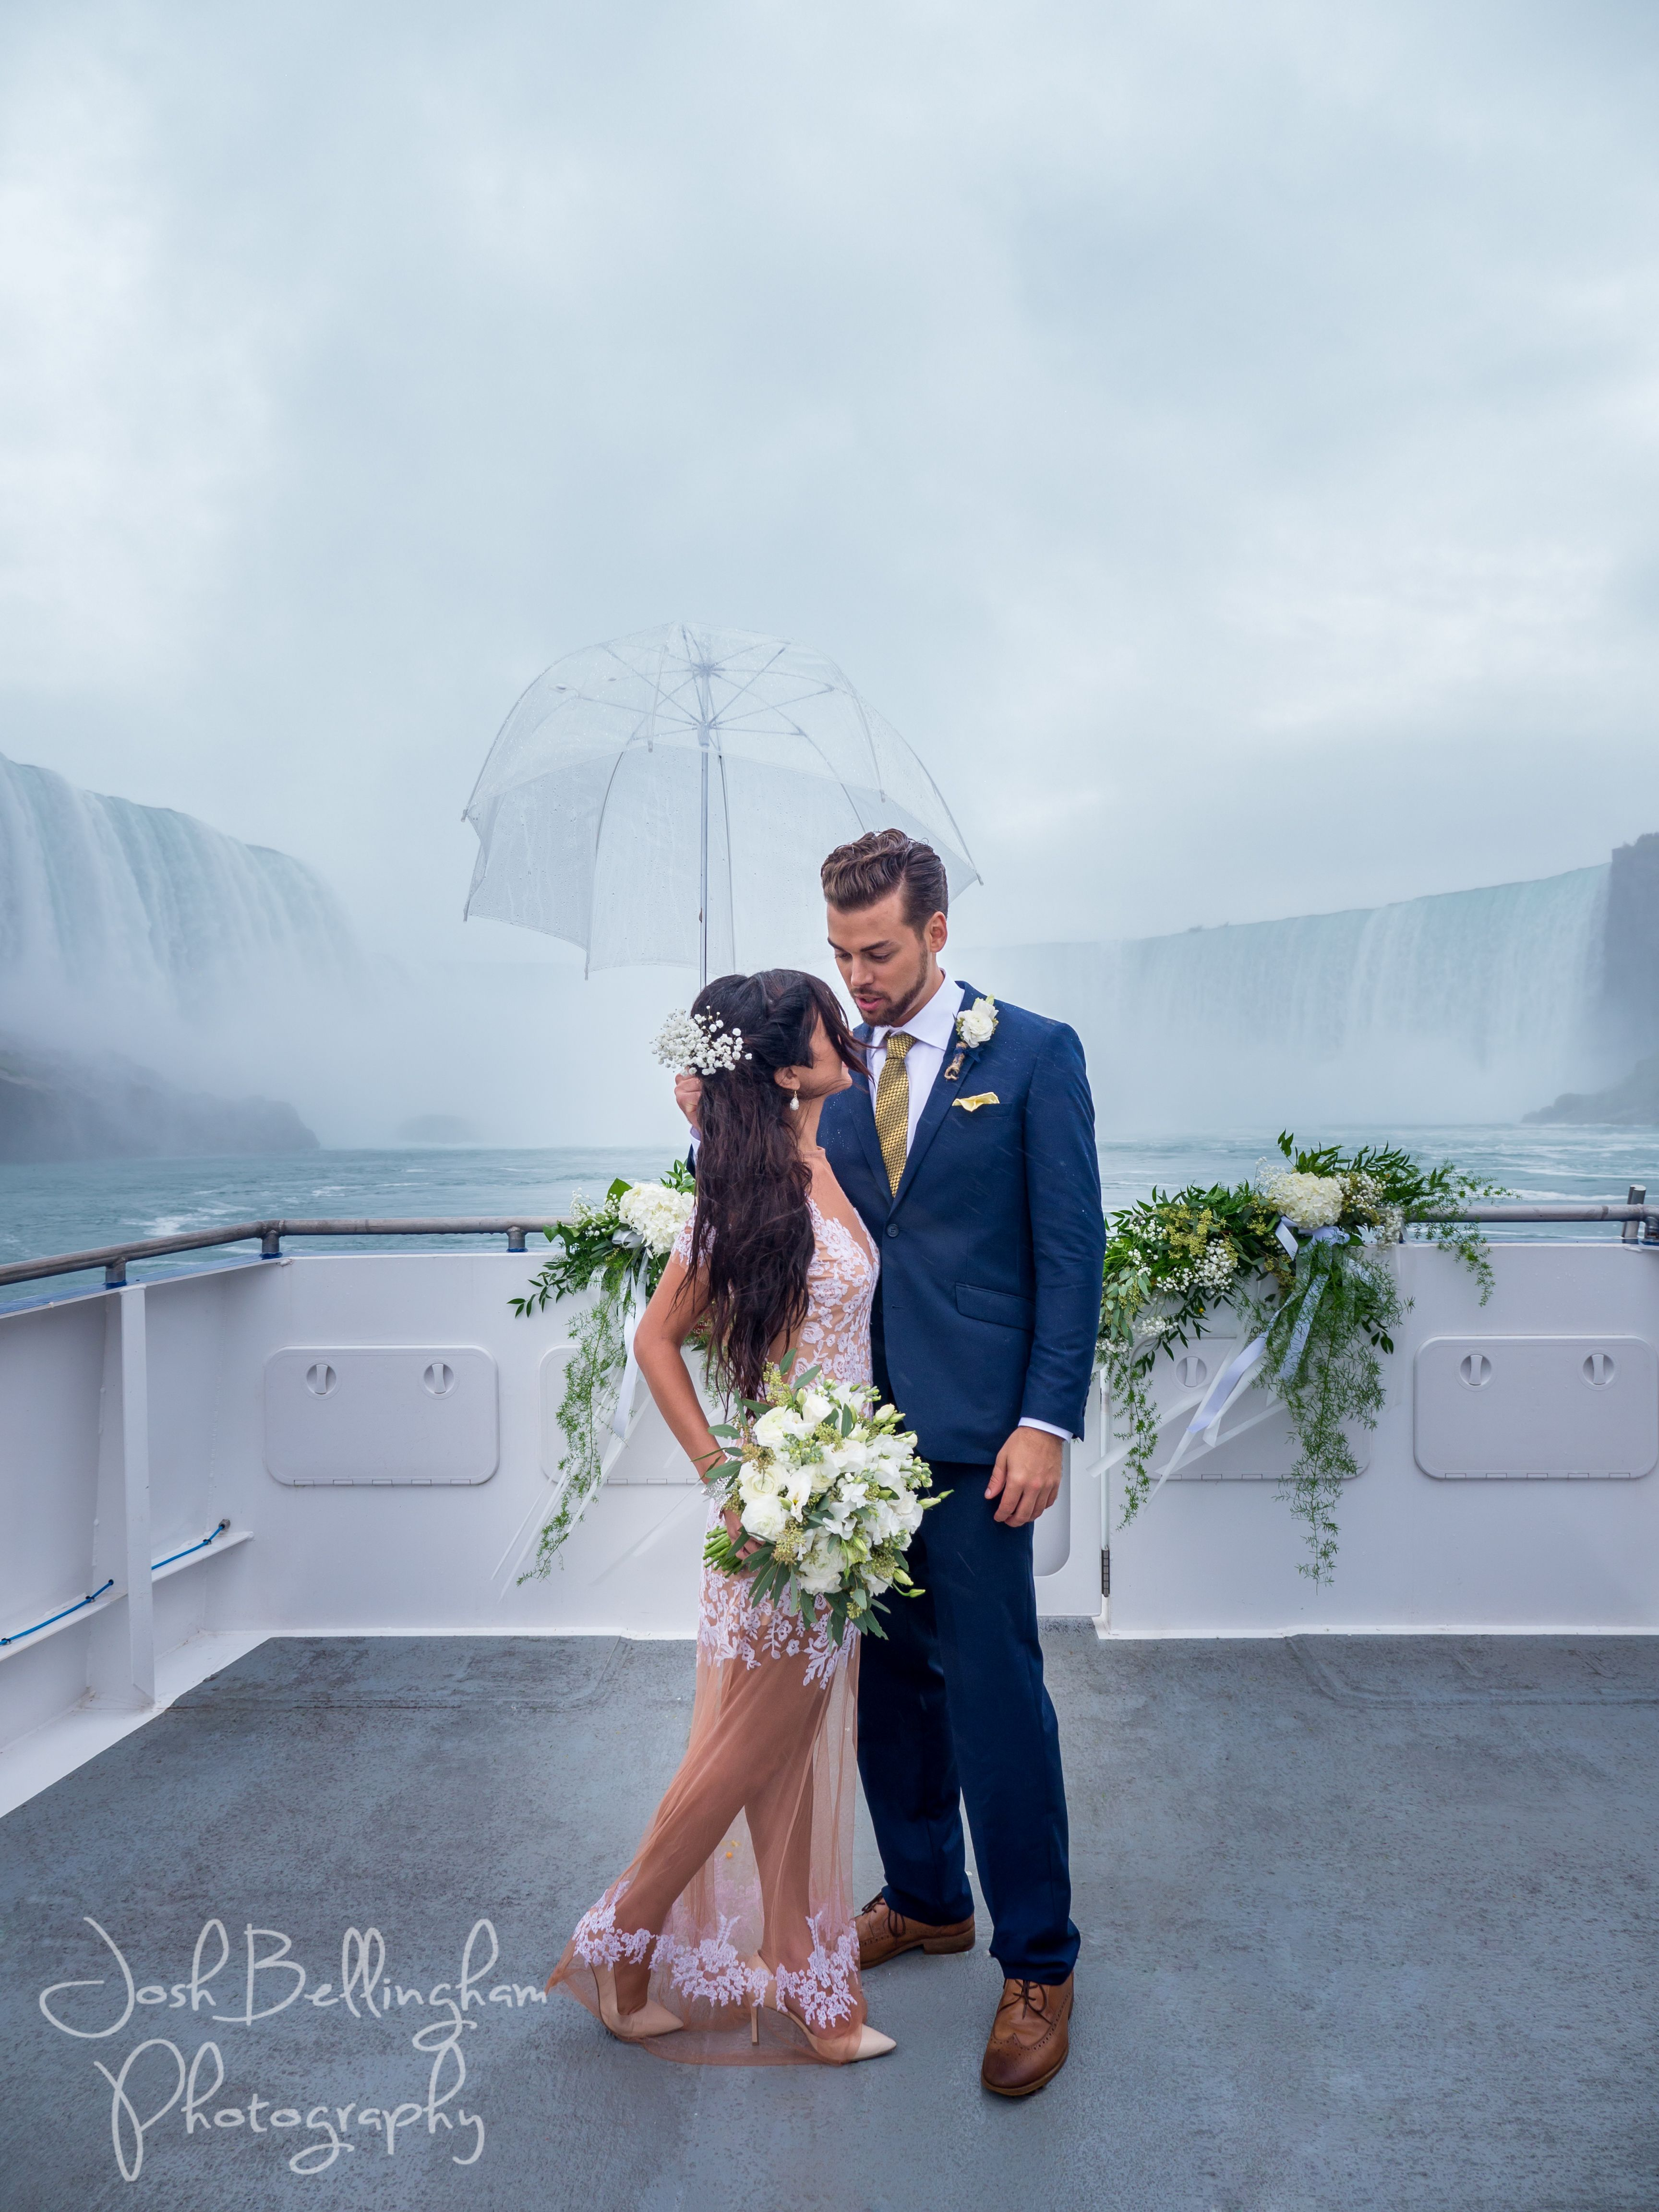 Niagara Falls Wedding Ceremony With Bride And Groom On Boat In Front Of Stunning Water